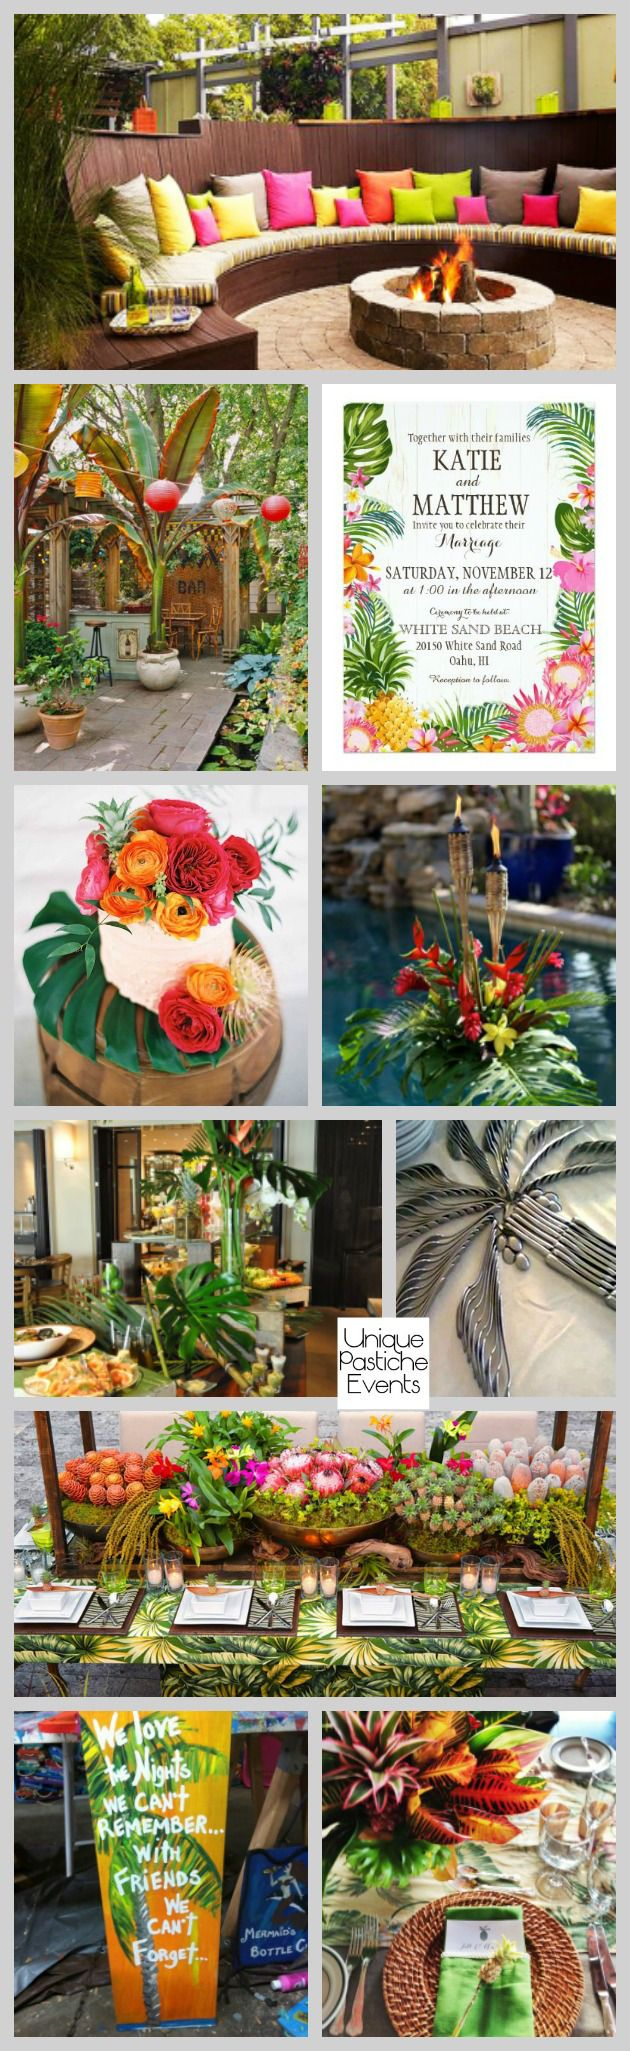 Tropical Backyard Engagement Party IdeaBoard InspirationBoard